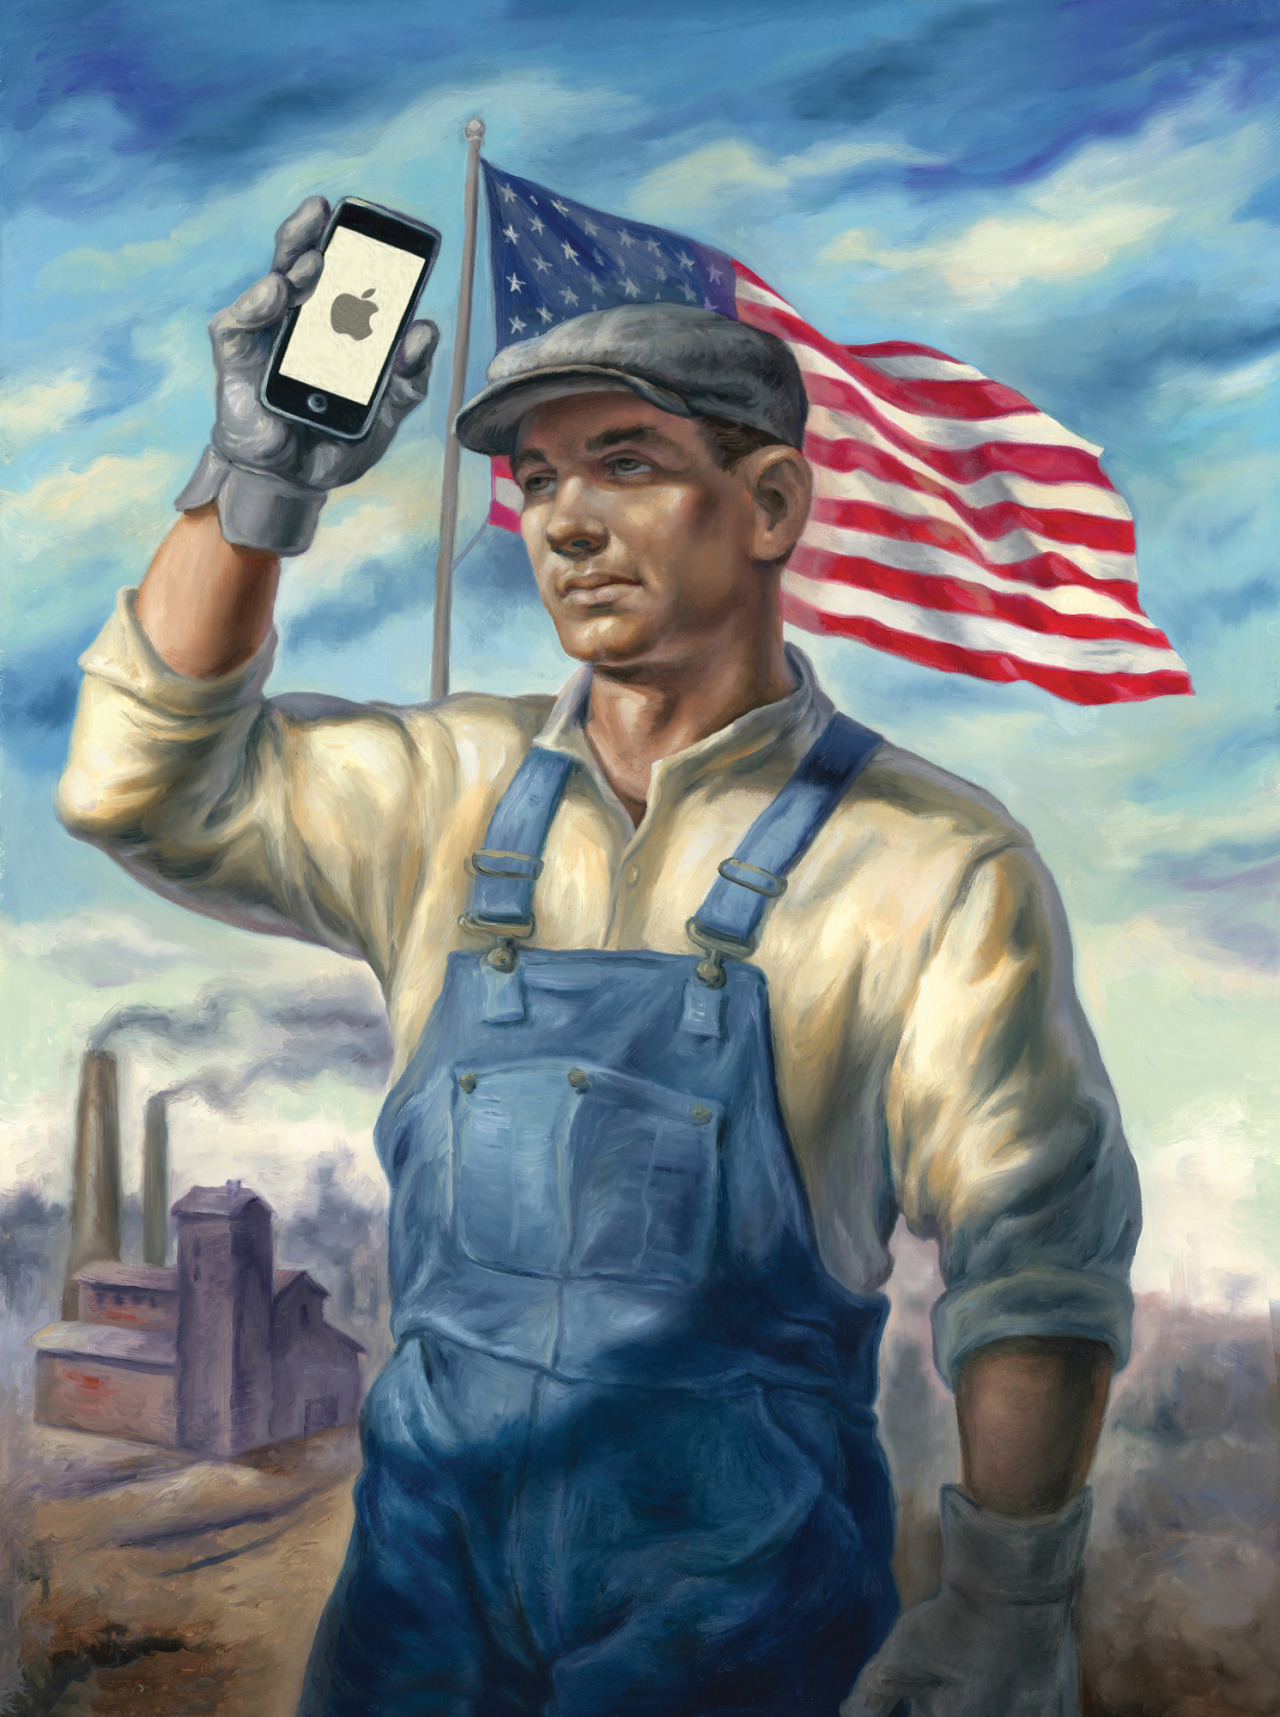 "<b><a href=""https://www.technologyreview.com/s/601491/the-all-american-iphone/"">The All-American iPhone</a></b> <br> Illustration by Owen Smith"